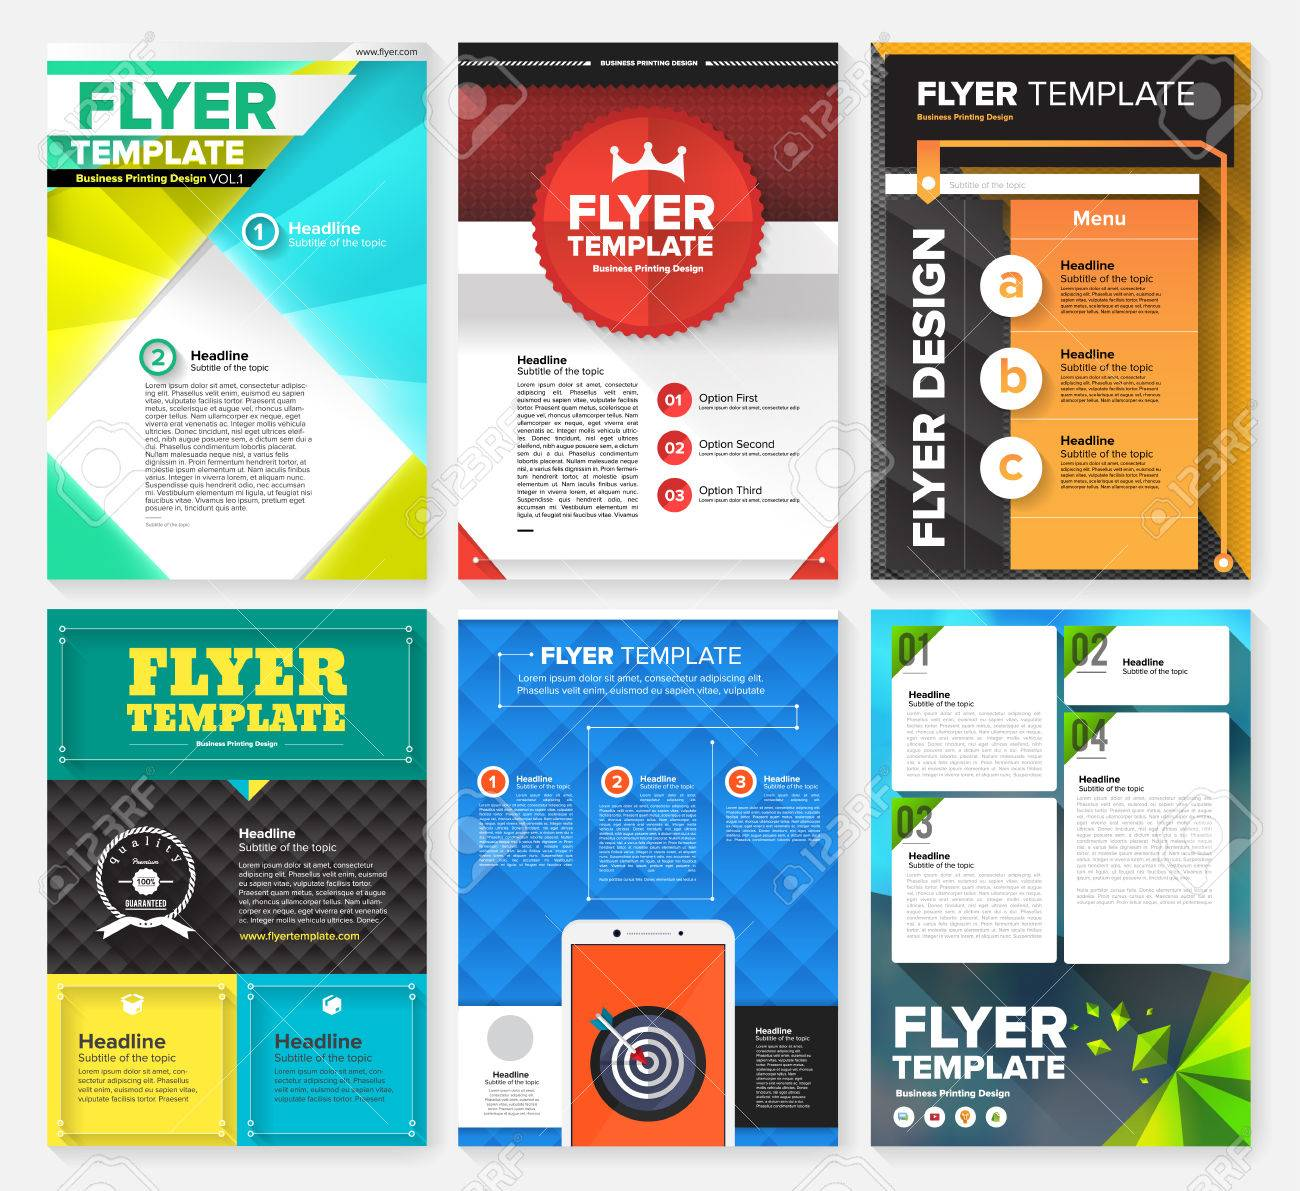 flyer templates stock illustrations cliparts and royalty flyer templates set of flyer brochure design templates geometric triangular abstract modern backgrounds